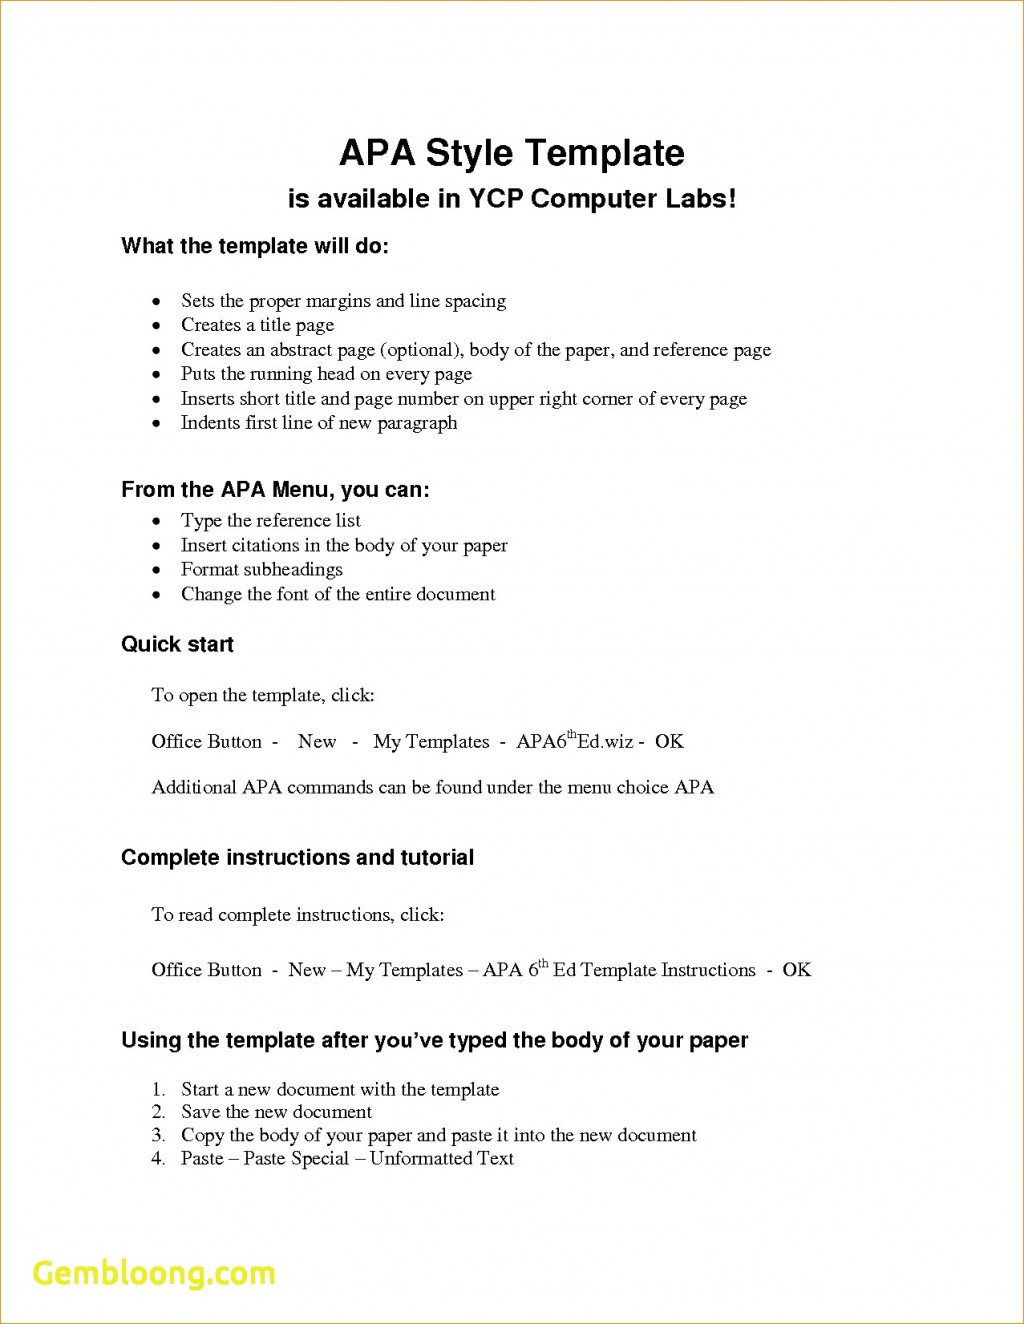 018 Research Paperpa Template Fresh Buy Custom Essays Cheap Tornemark Dagskole Format Of Astounding A Paper Example Simple Pdf Examples Good Abstracts Large